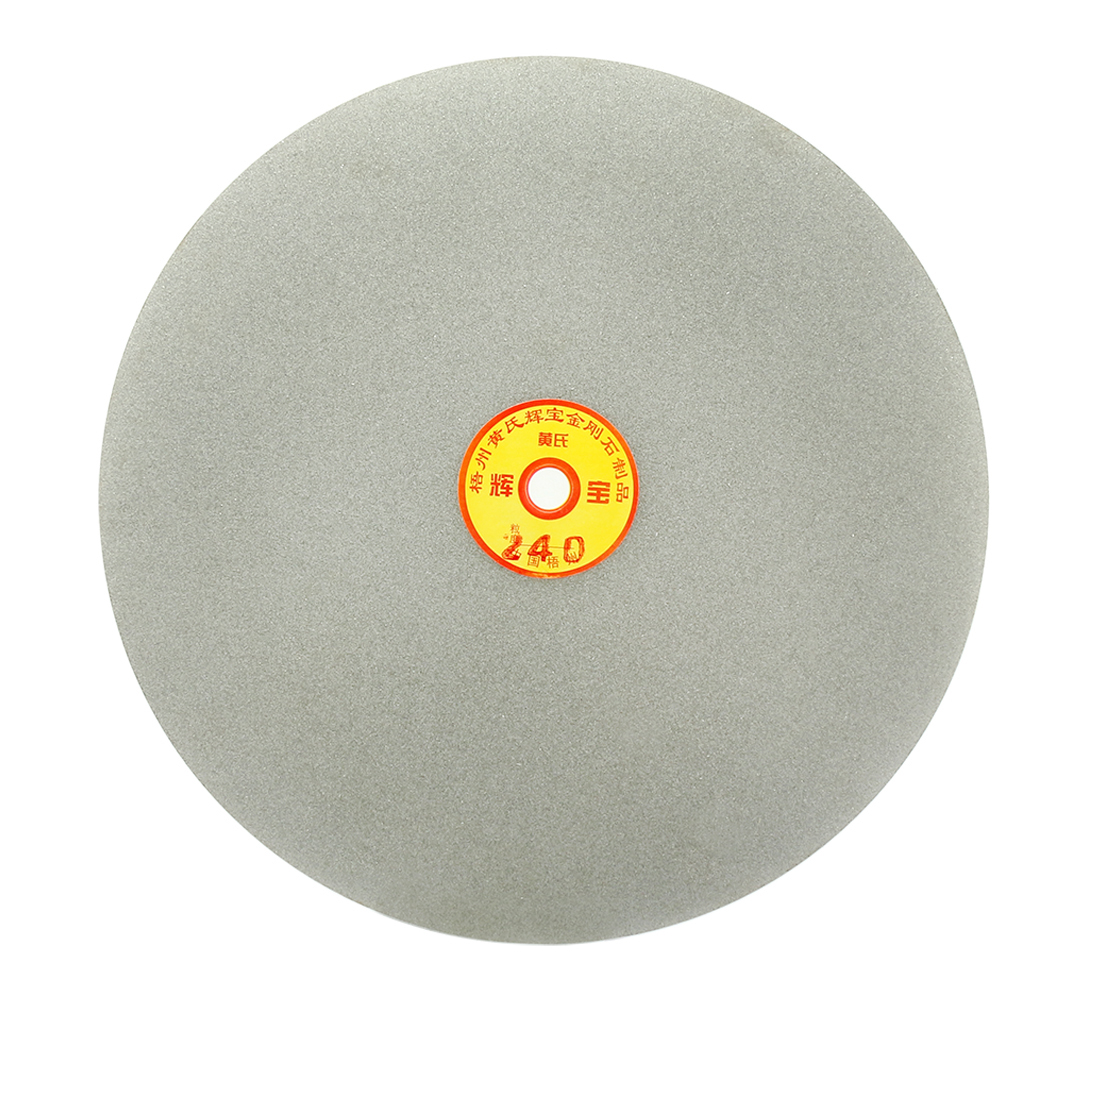 250mm 10-inch Grit 240 Diamond Coated Flat Lap Disk Wheel Grinding Sanding Disc